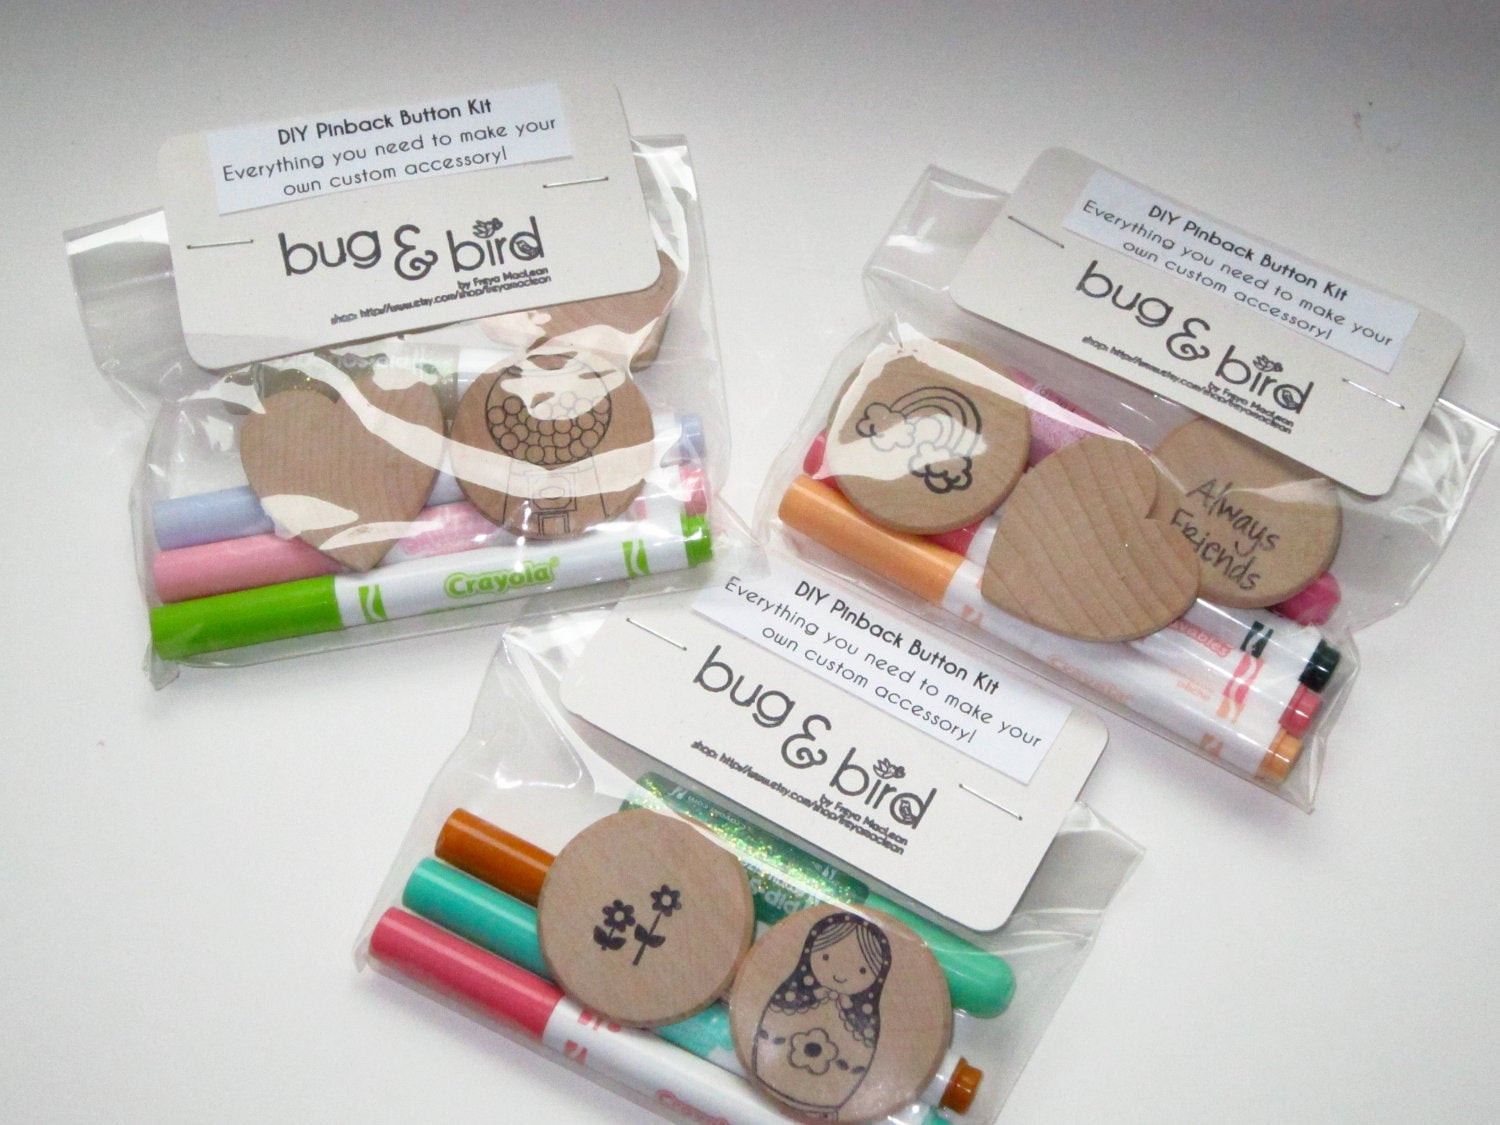 Best ideas about DIY Craft Kits For Kids . Save or Pin Items similar to DIY Pinback Button Kit Craft Kit for Now.